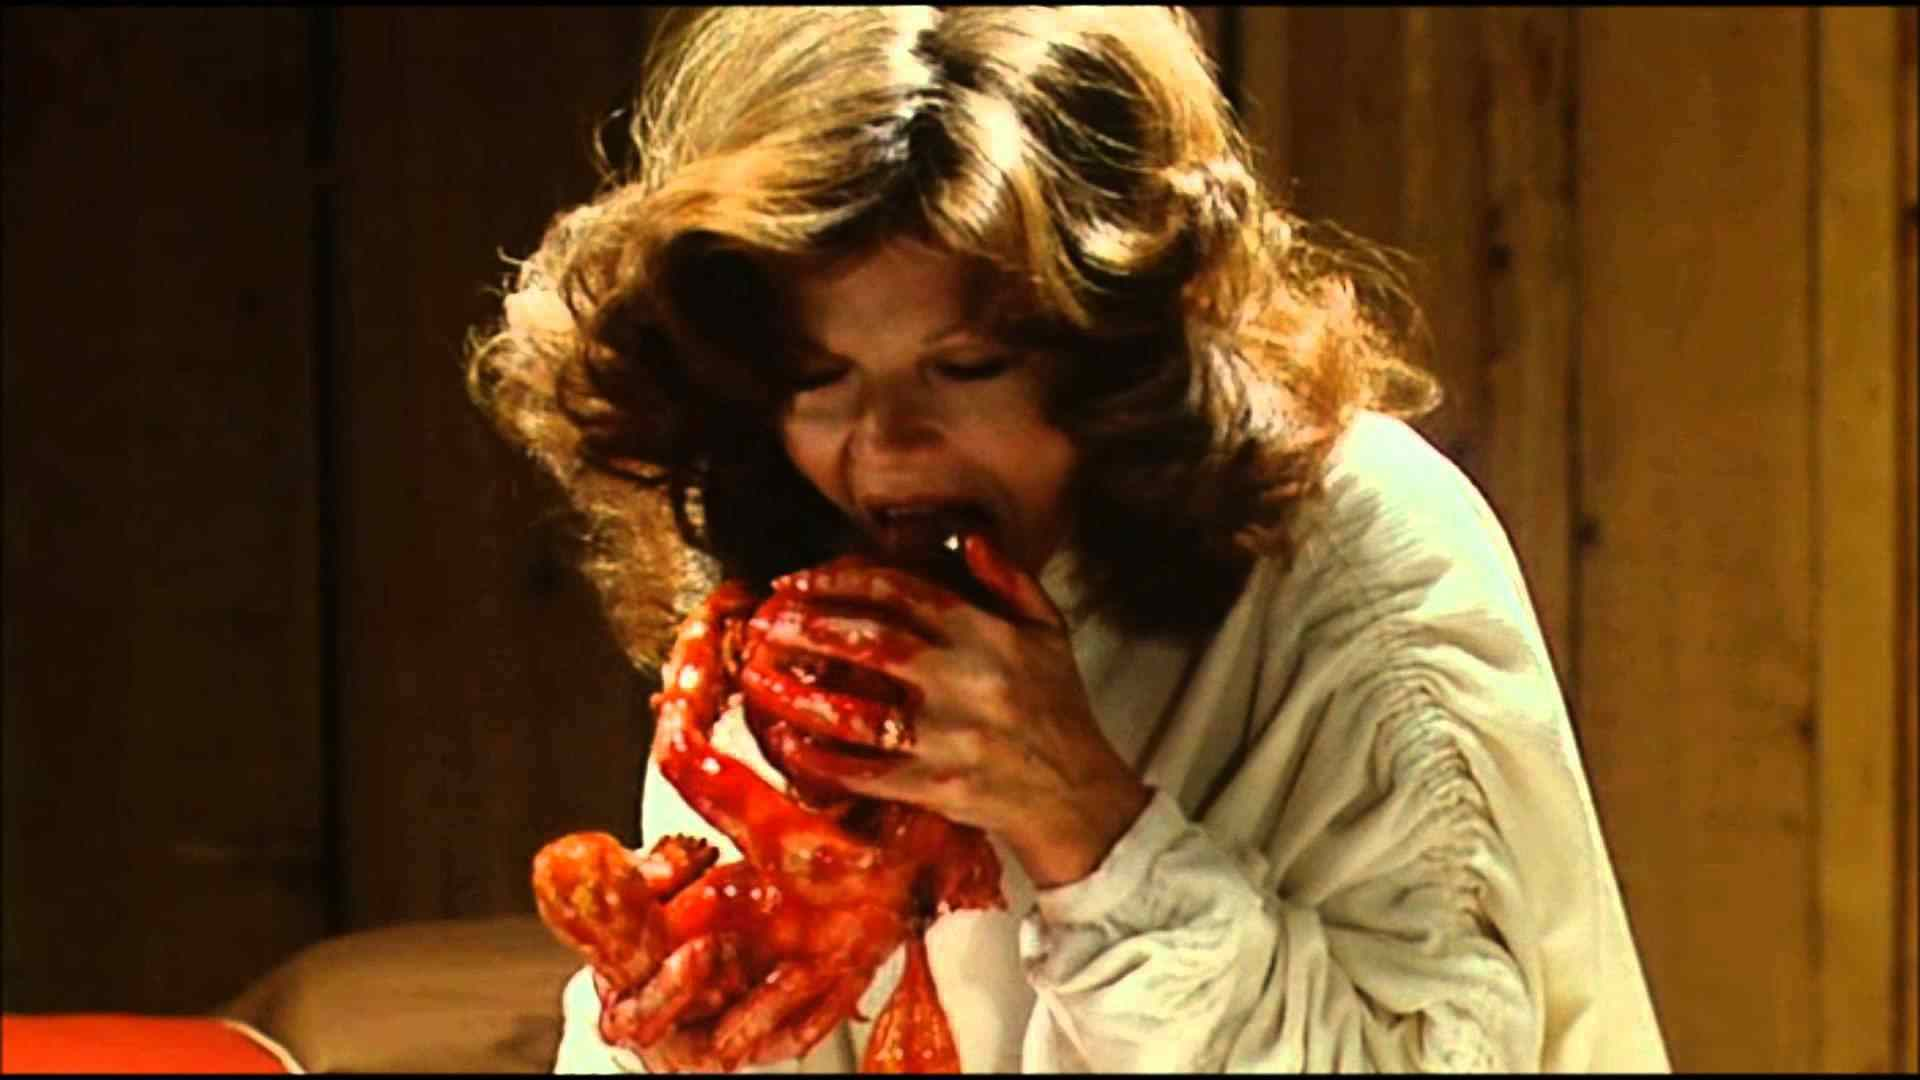 The movie The Brood directed by David Cronenberg.